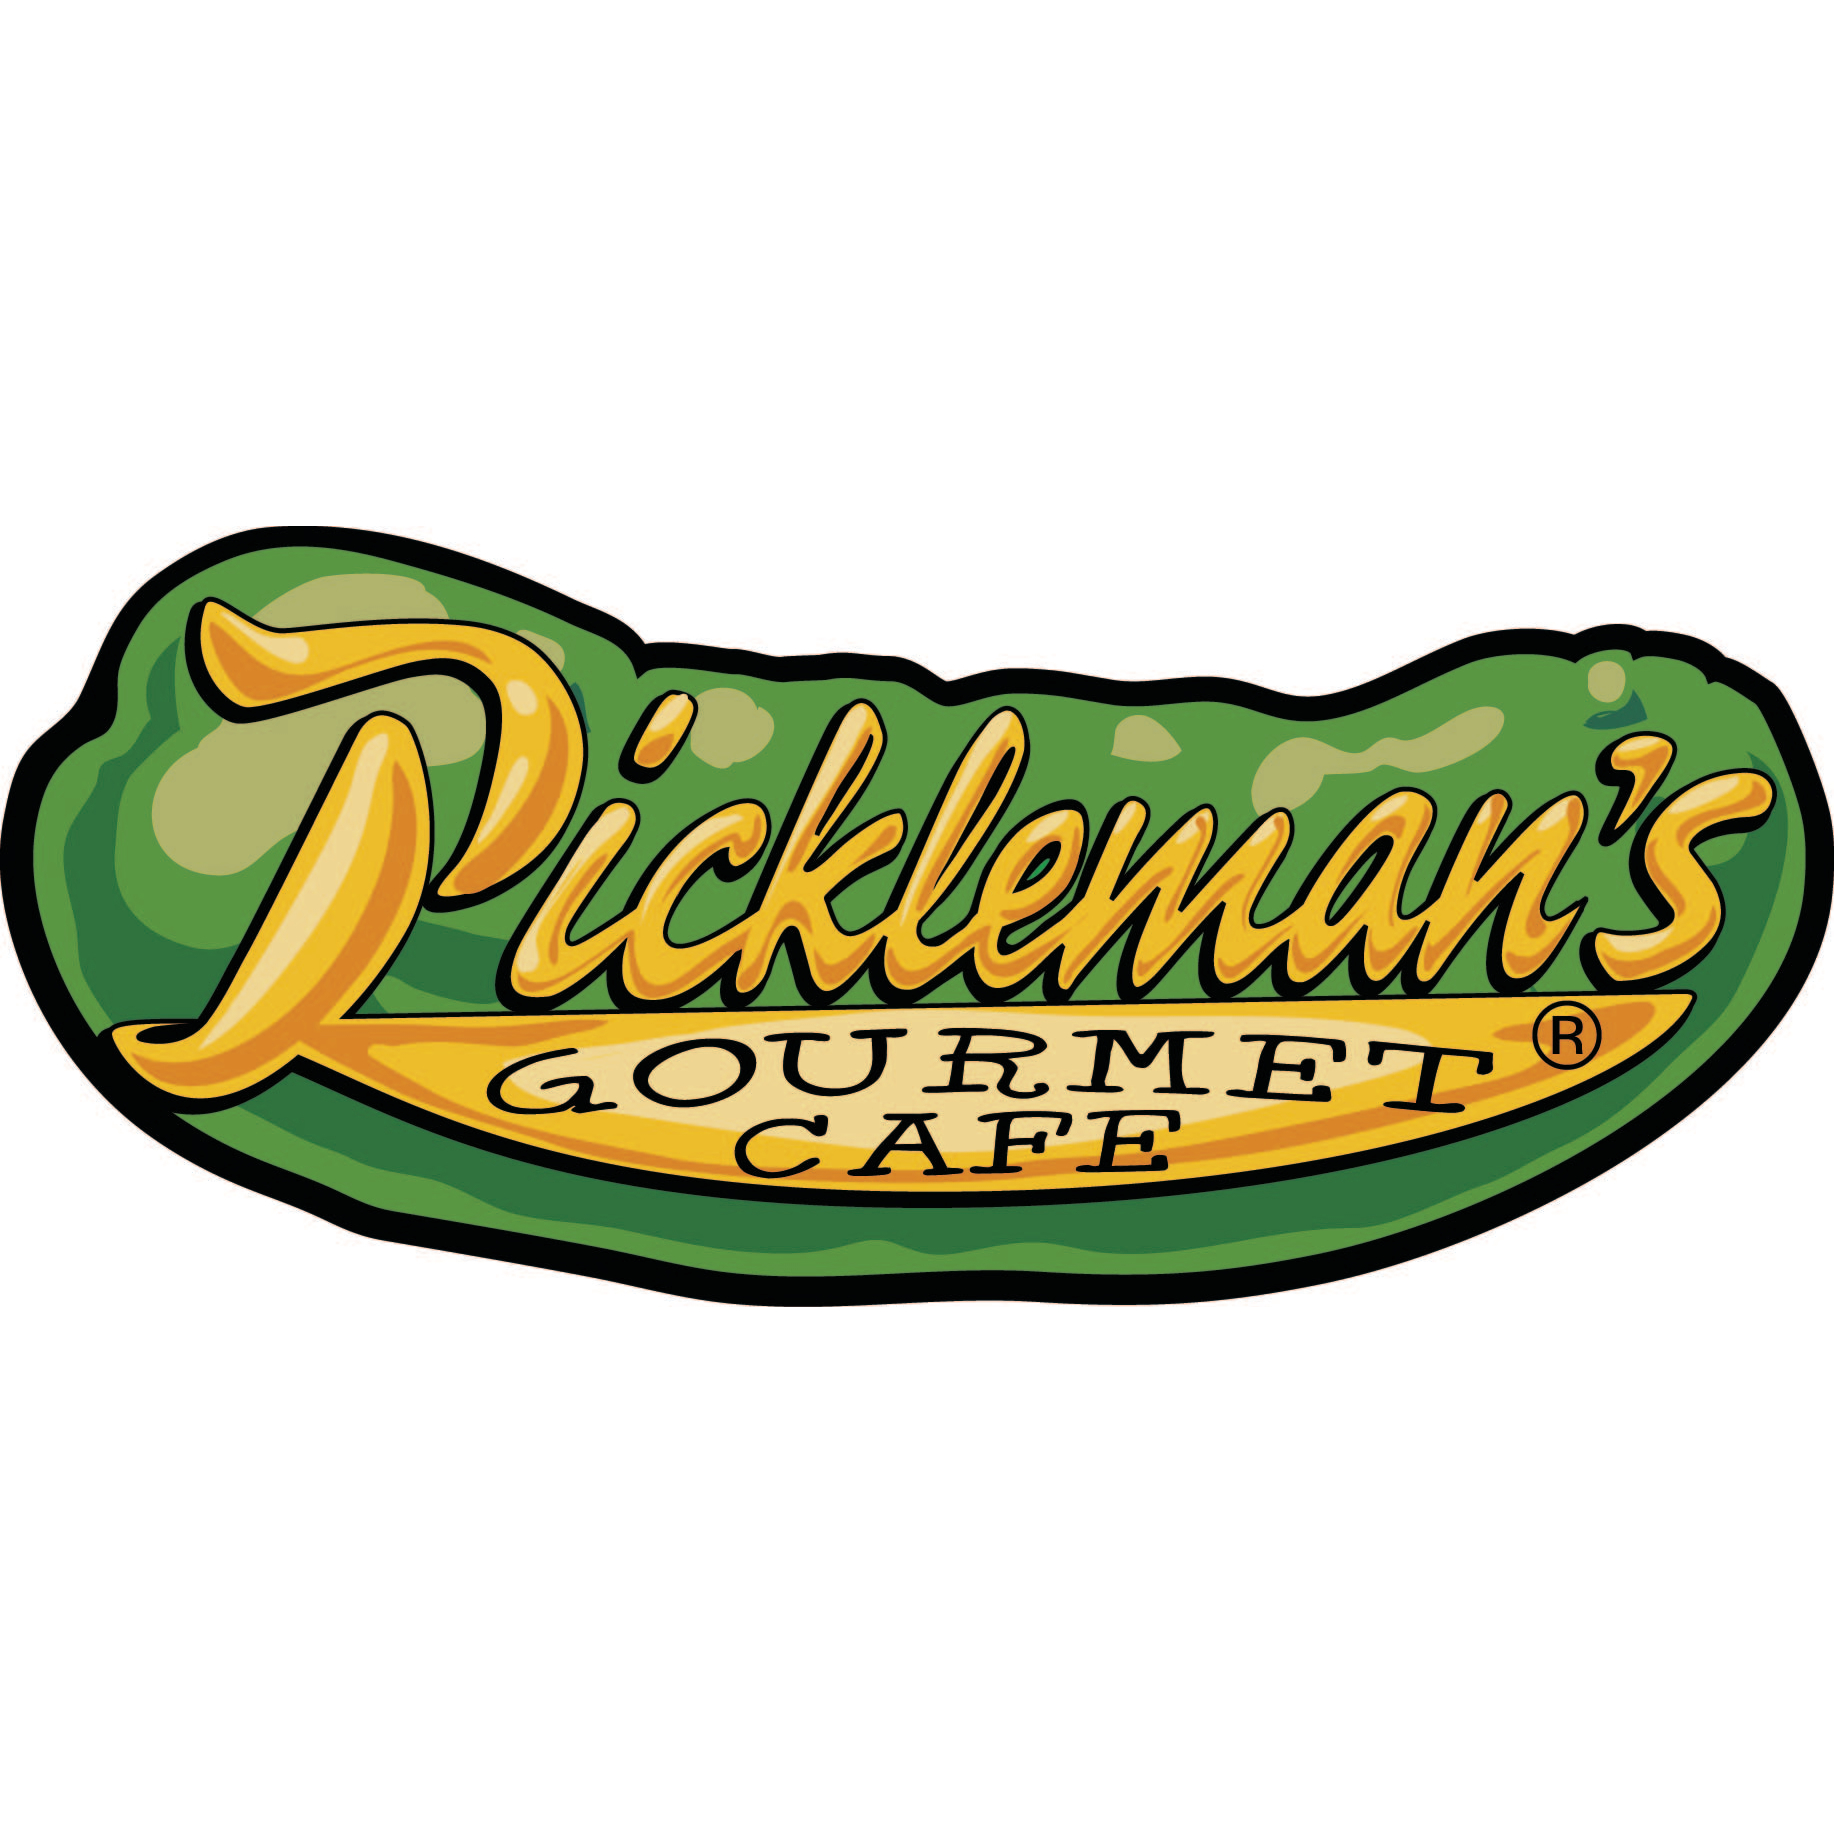 Pickleman's coupon code